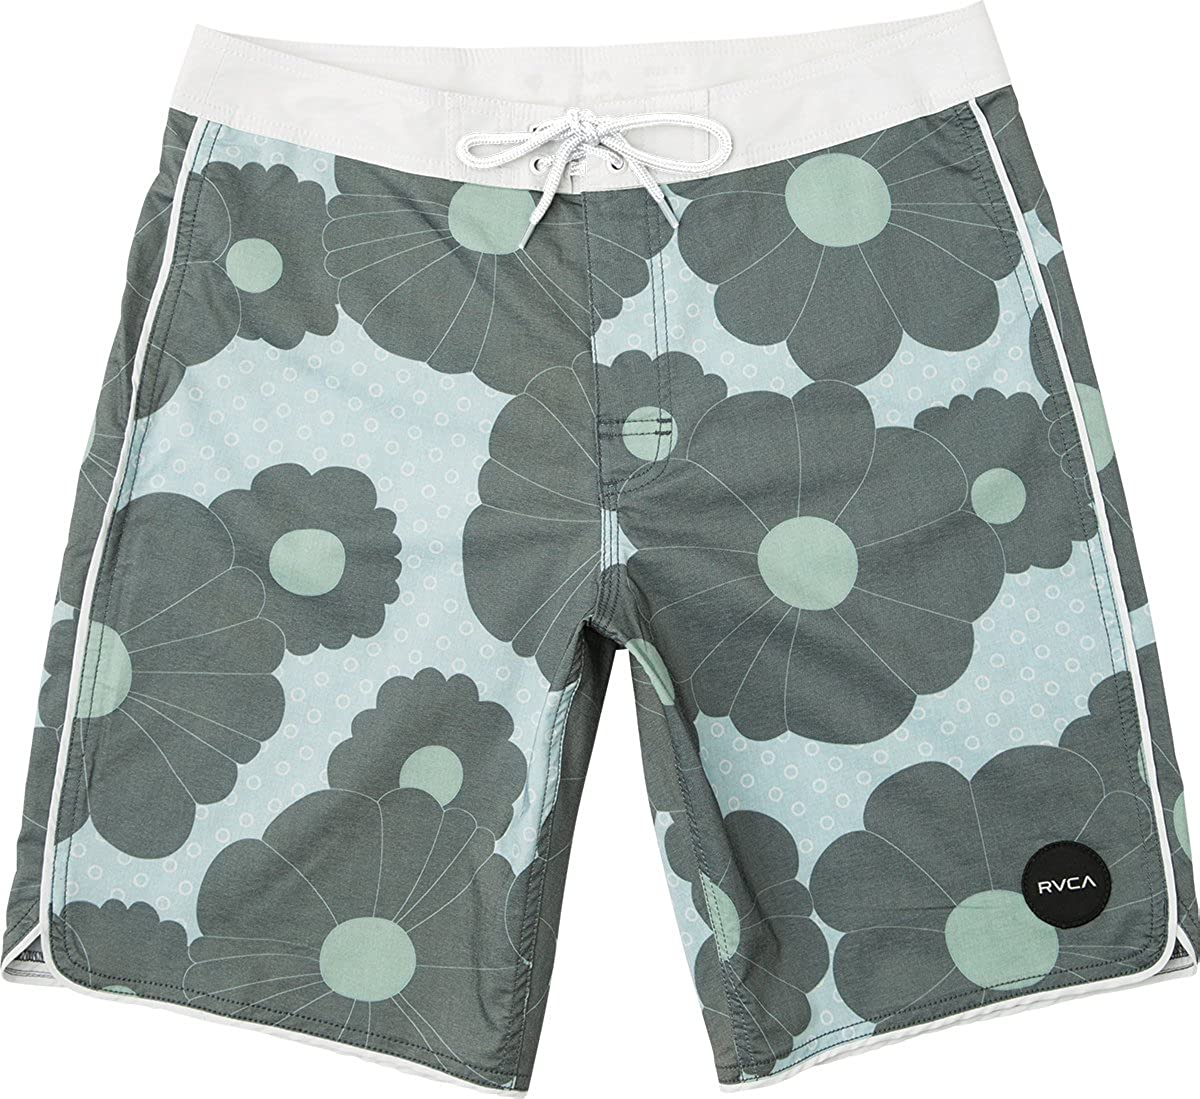 RVCA Bargain Men's Max 43% OFF Summers Day Trunk